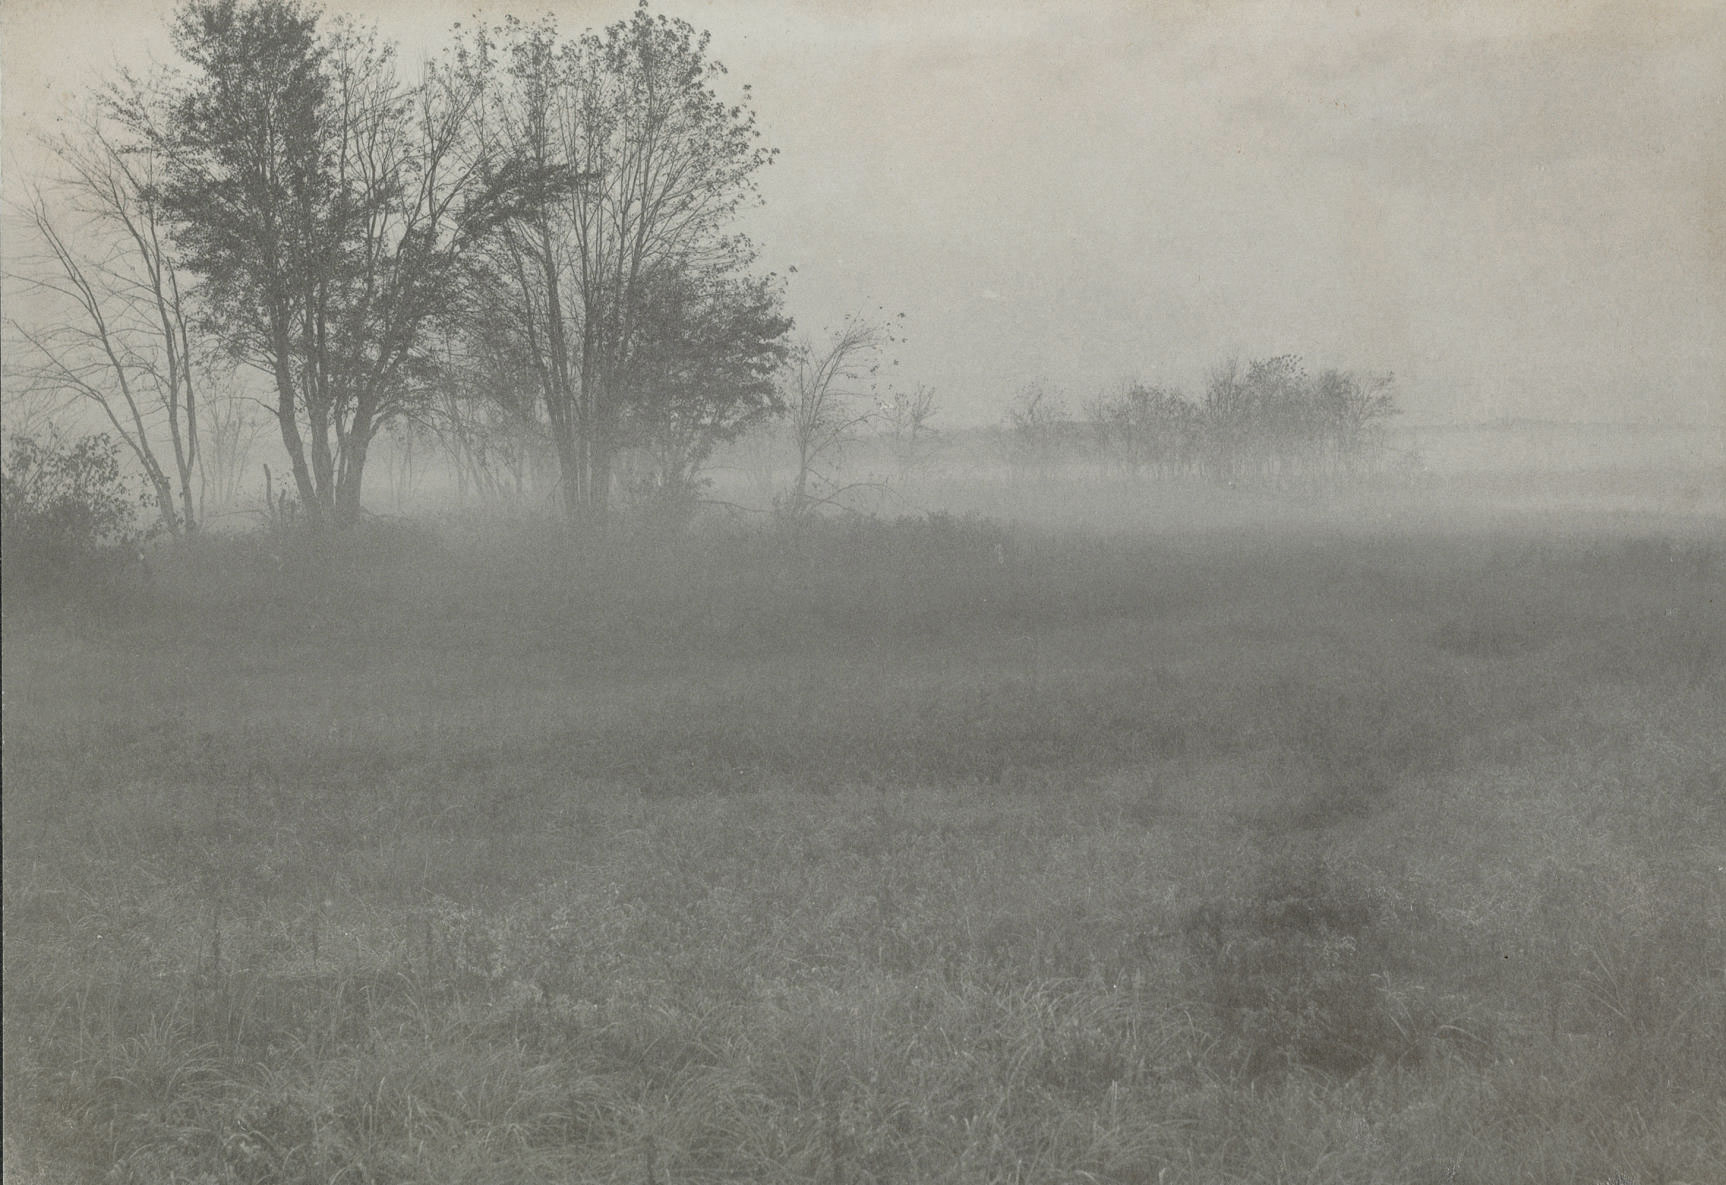 Untitled (Field in fog), c. 1910